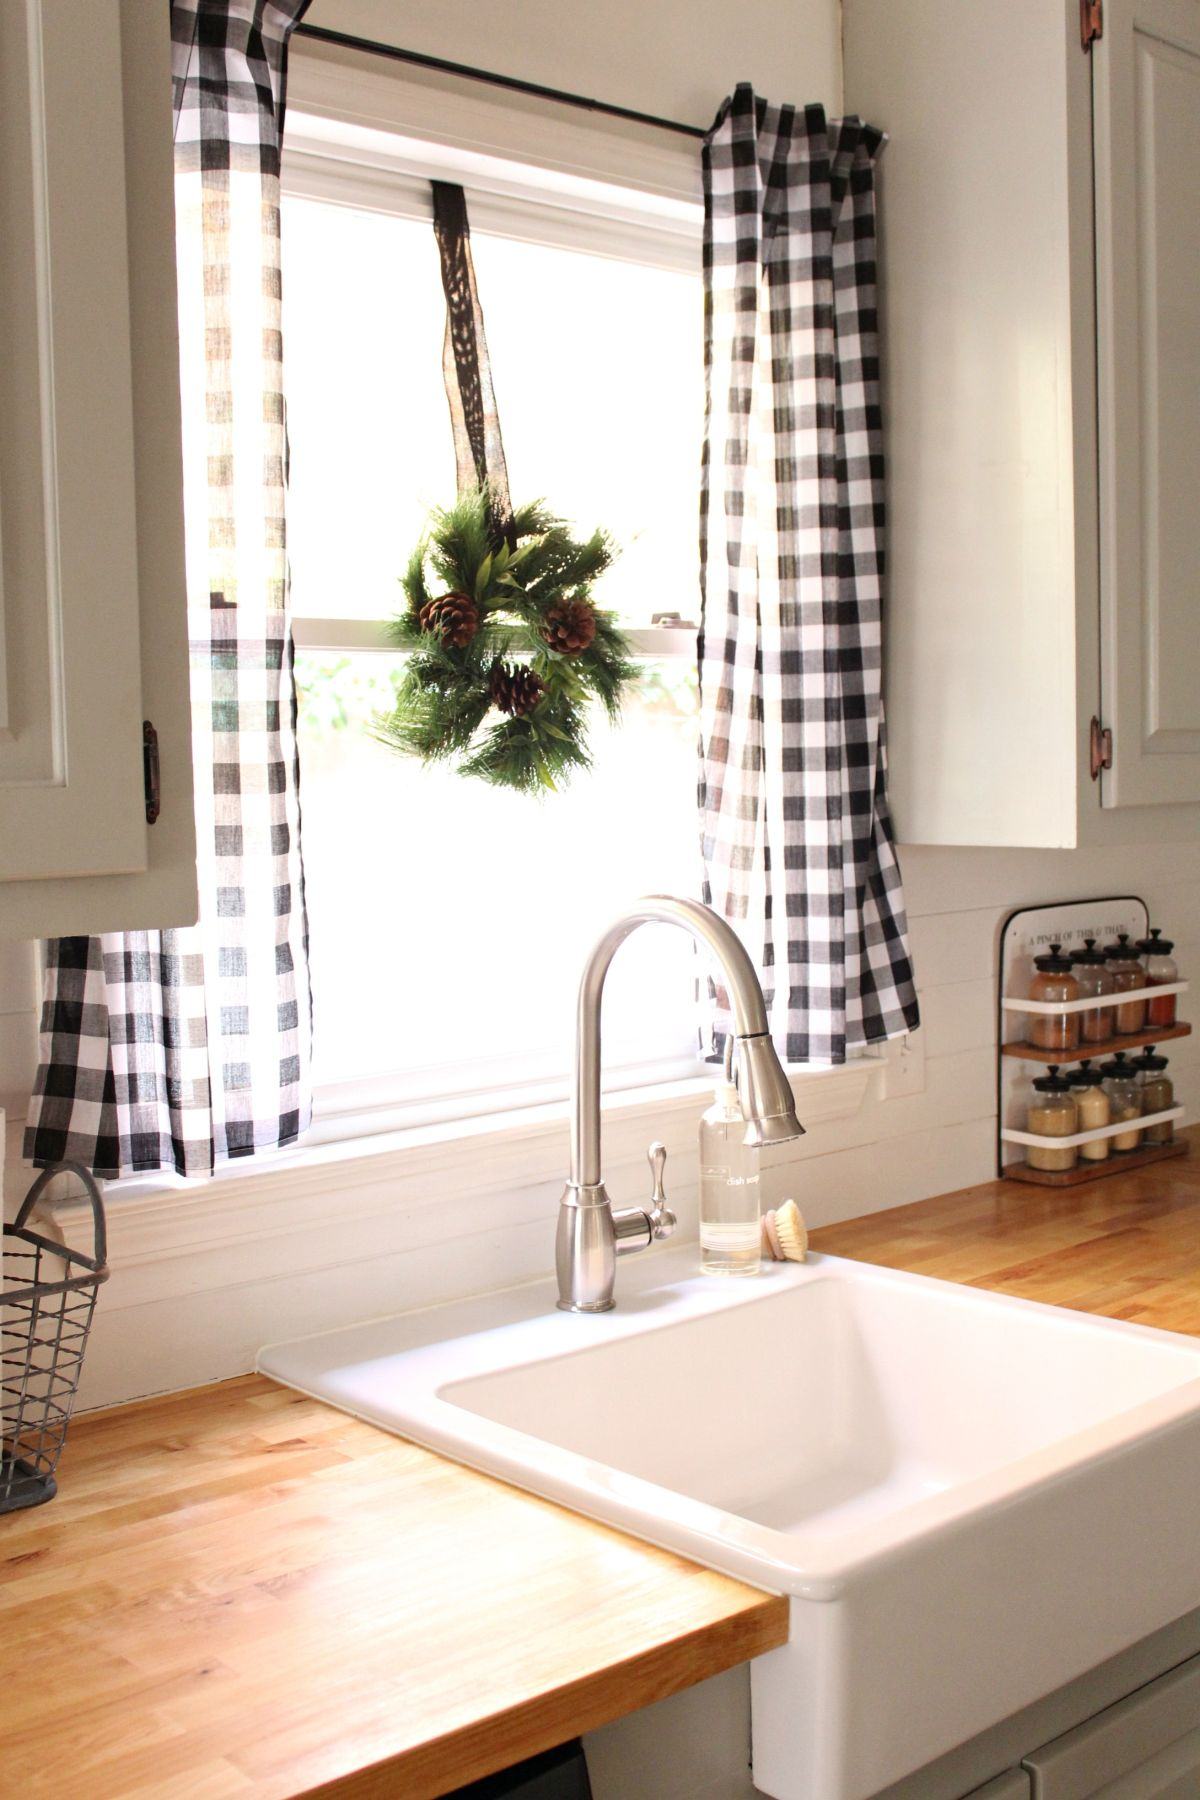 10 Best Patterns For Kitchen Curtains on Farmhouse Curtain Ideas  id=94843